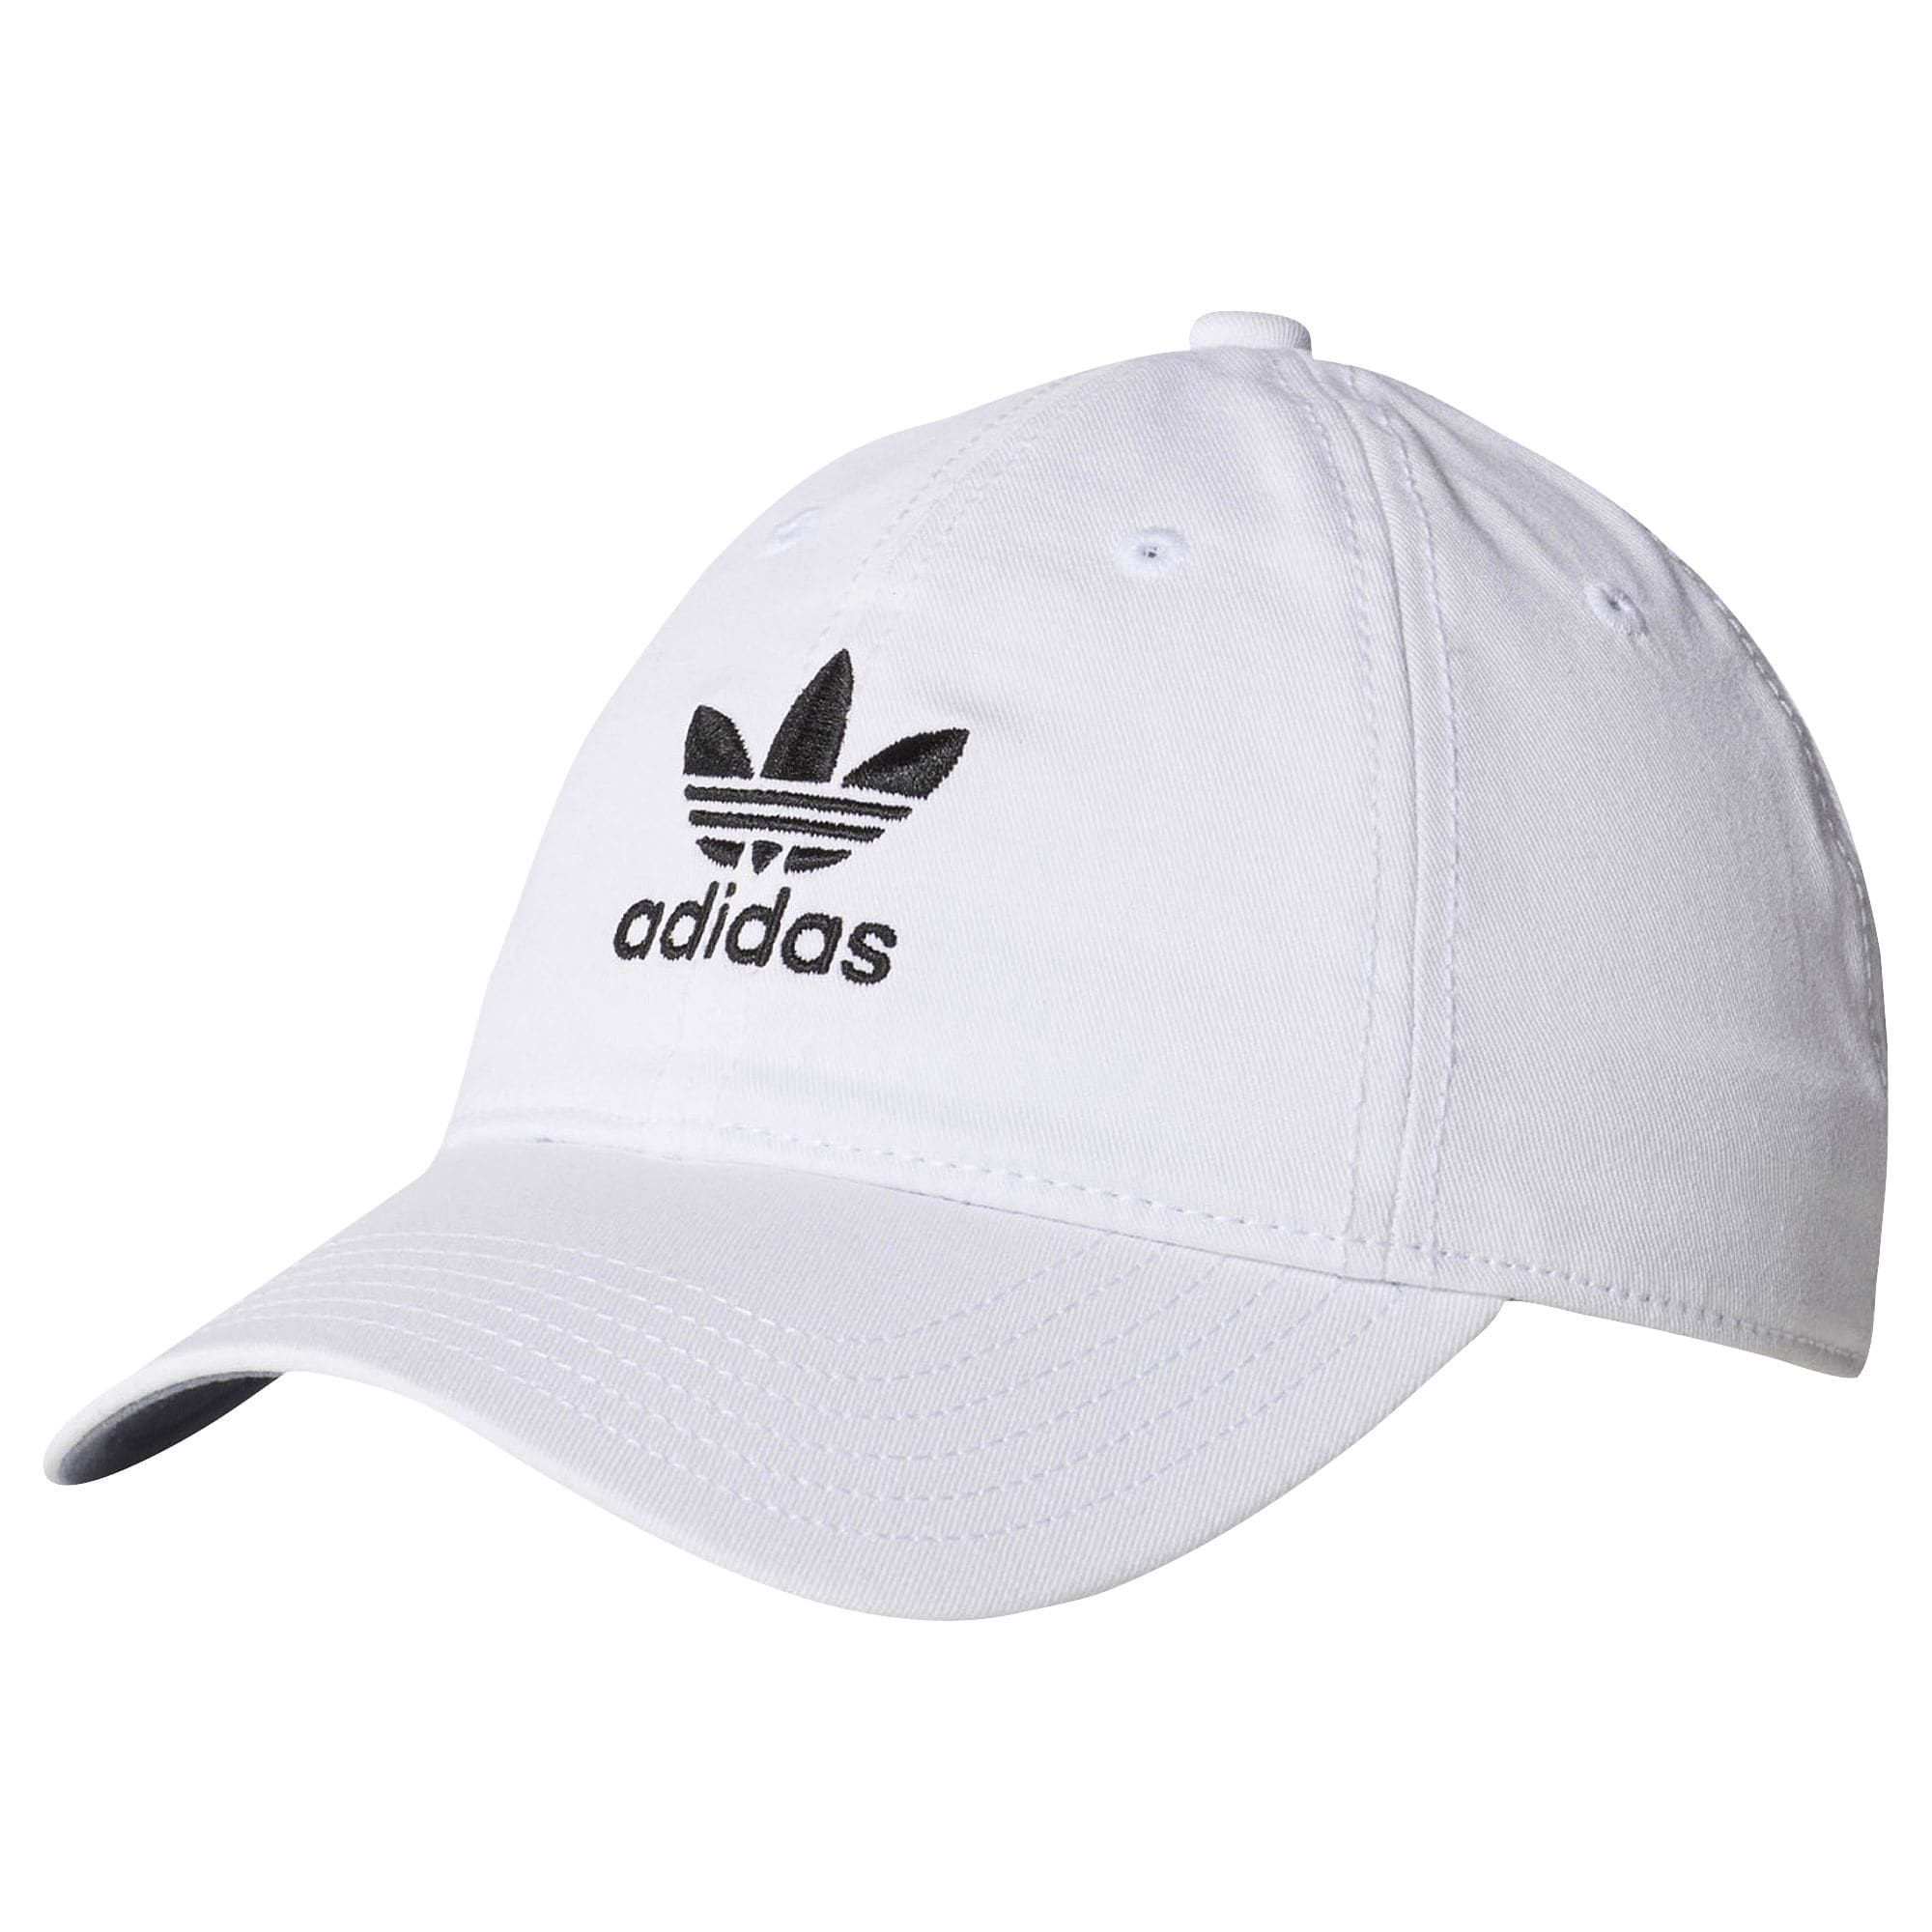 6ecb05e29e8 adidas Originals Relaxed Strapback Hat - Women s - Casual - Accessories -  Chalk Pink. Find this Pin and ...